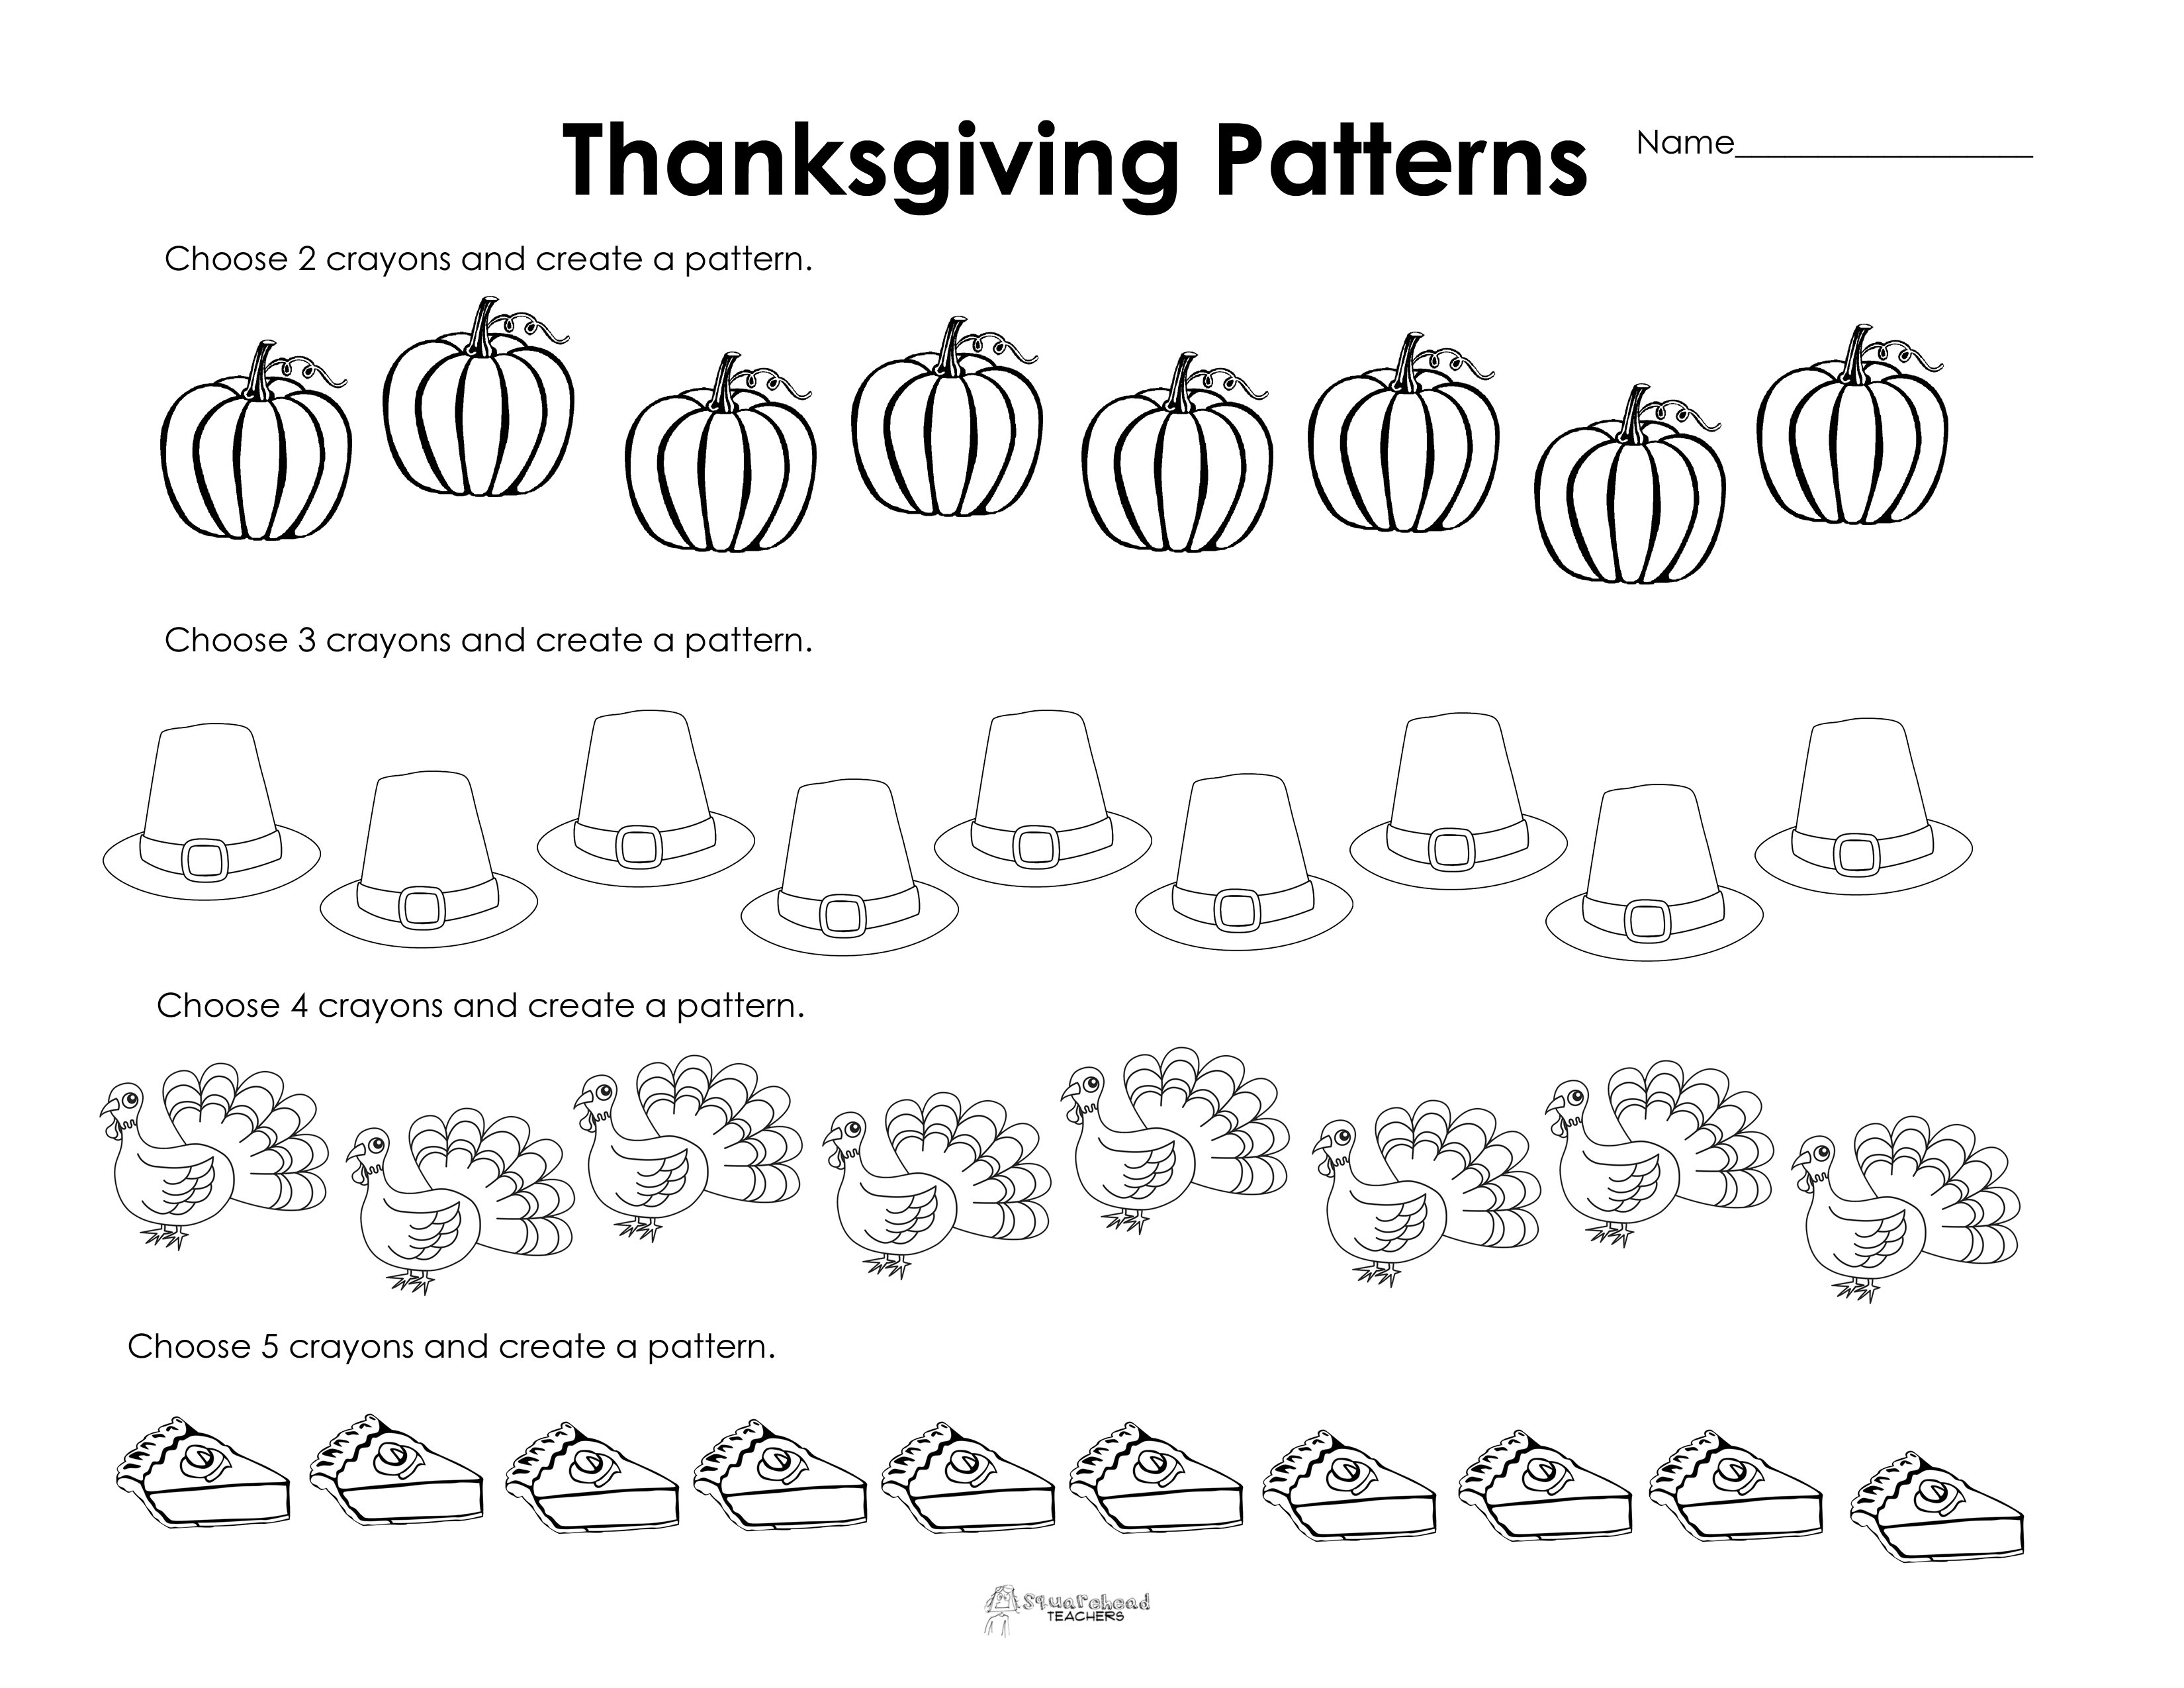 Thanksgiving Printable Worksheets Delibertad – Thanksgiving Printable Math Worksheets